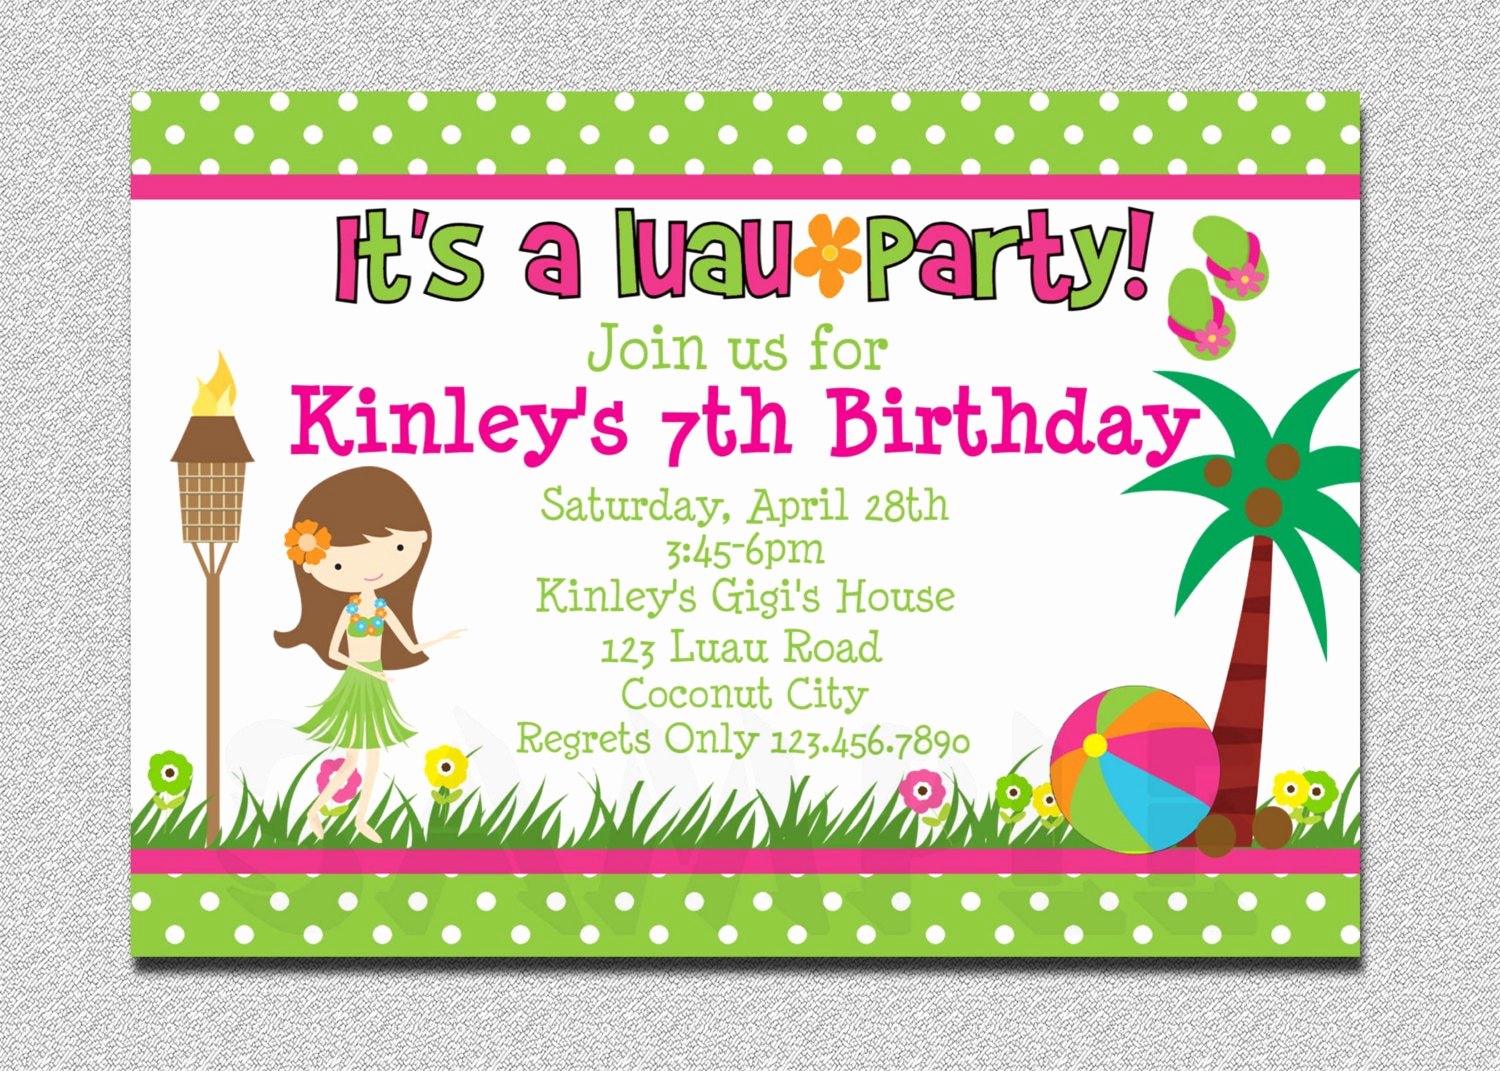 Luau Birthday Invitation Wording Inspirational Luau Birthday Invitation Luau Birthday Party Invitation